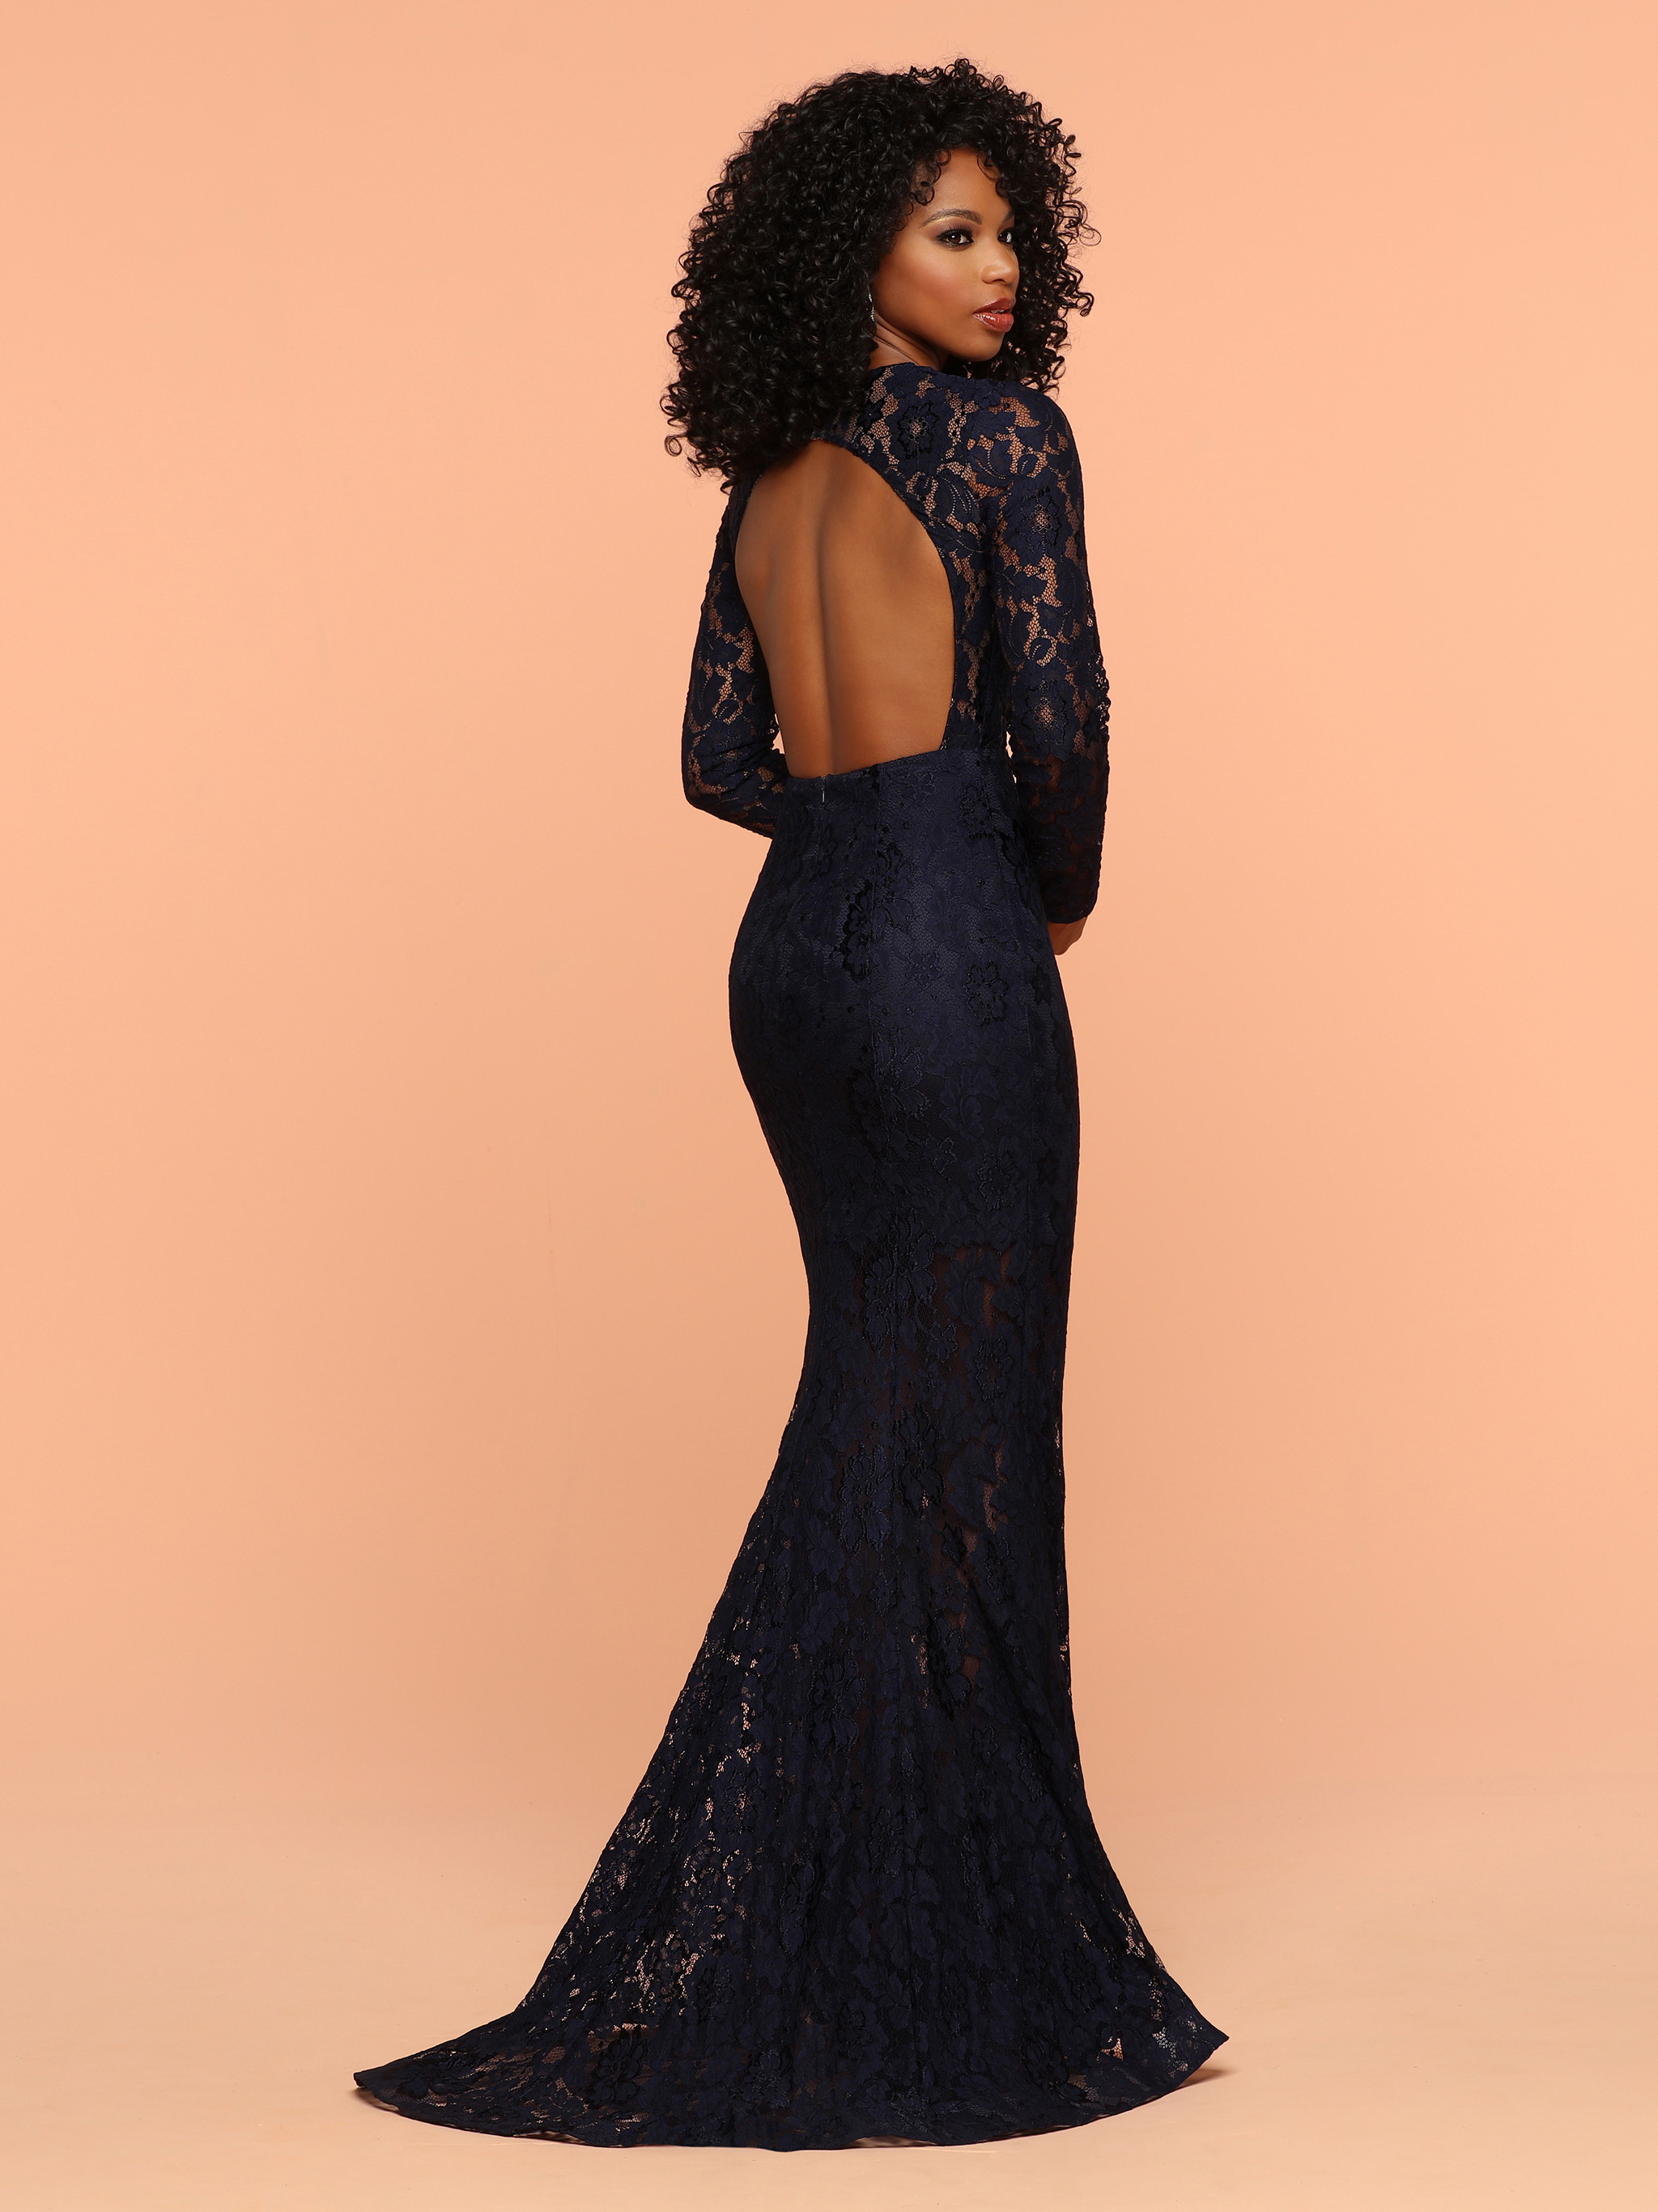 Image showing back view of style #71854